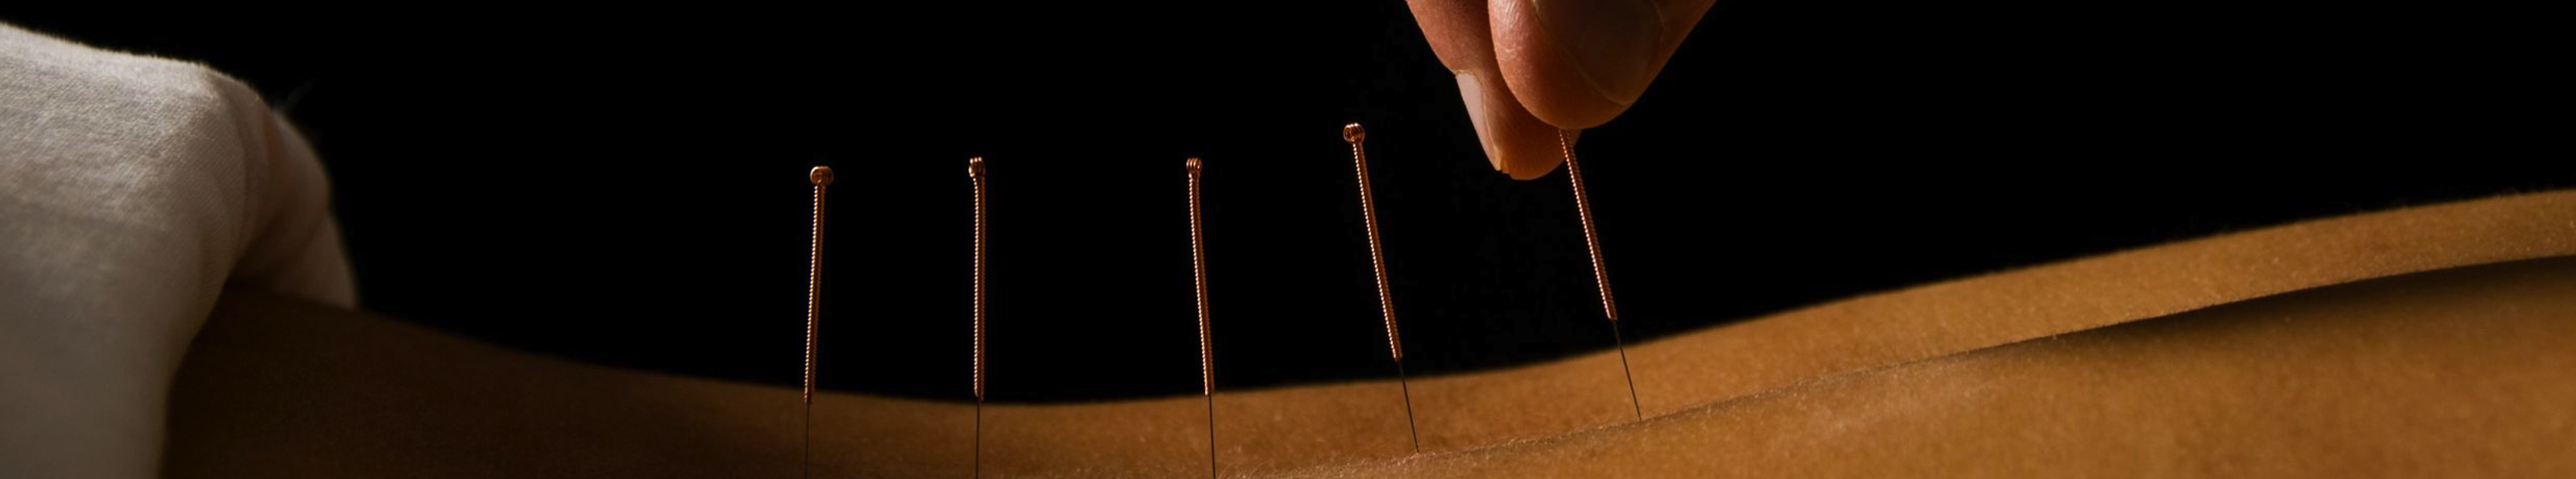 banniere acupuncture